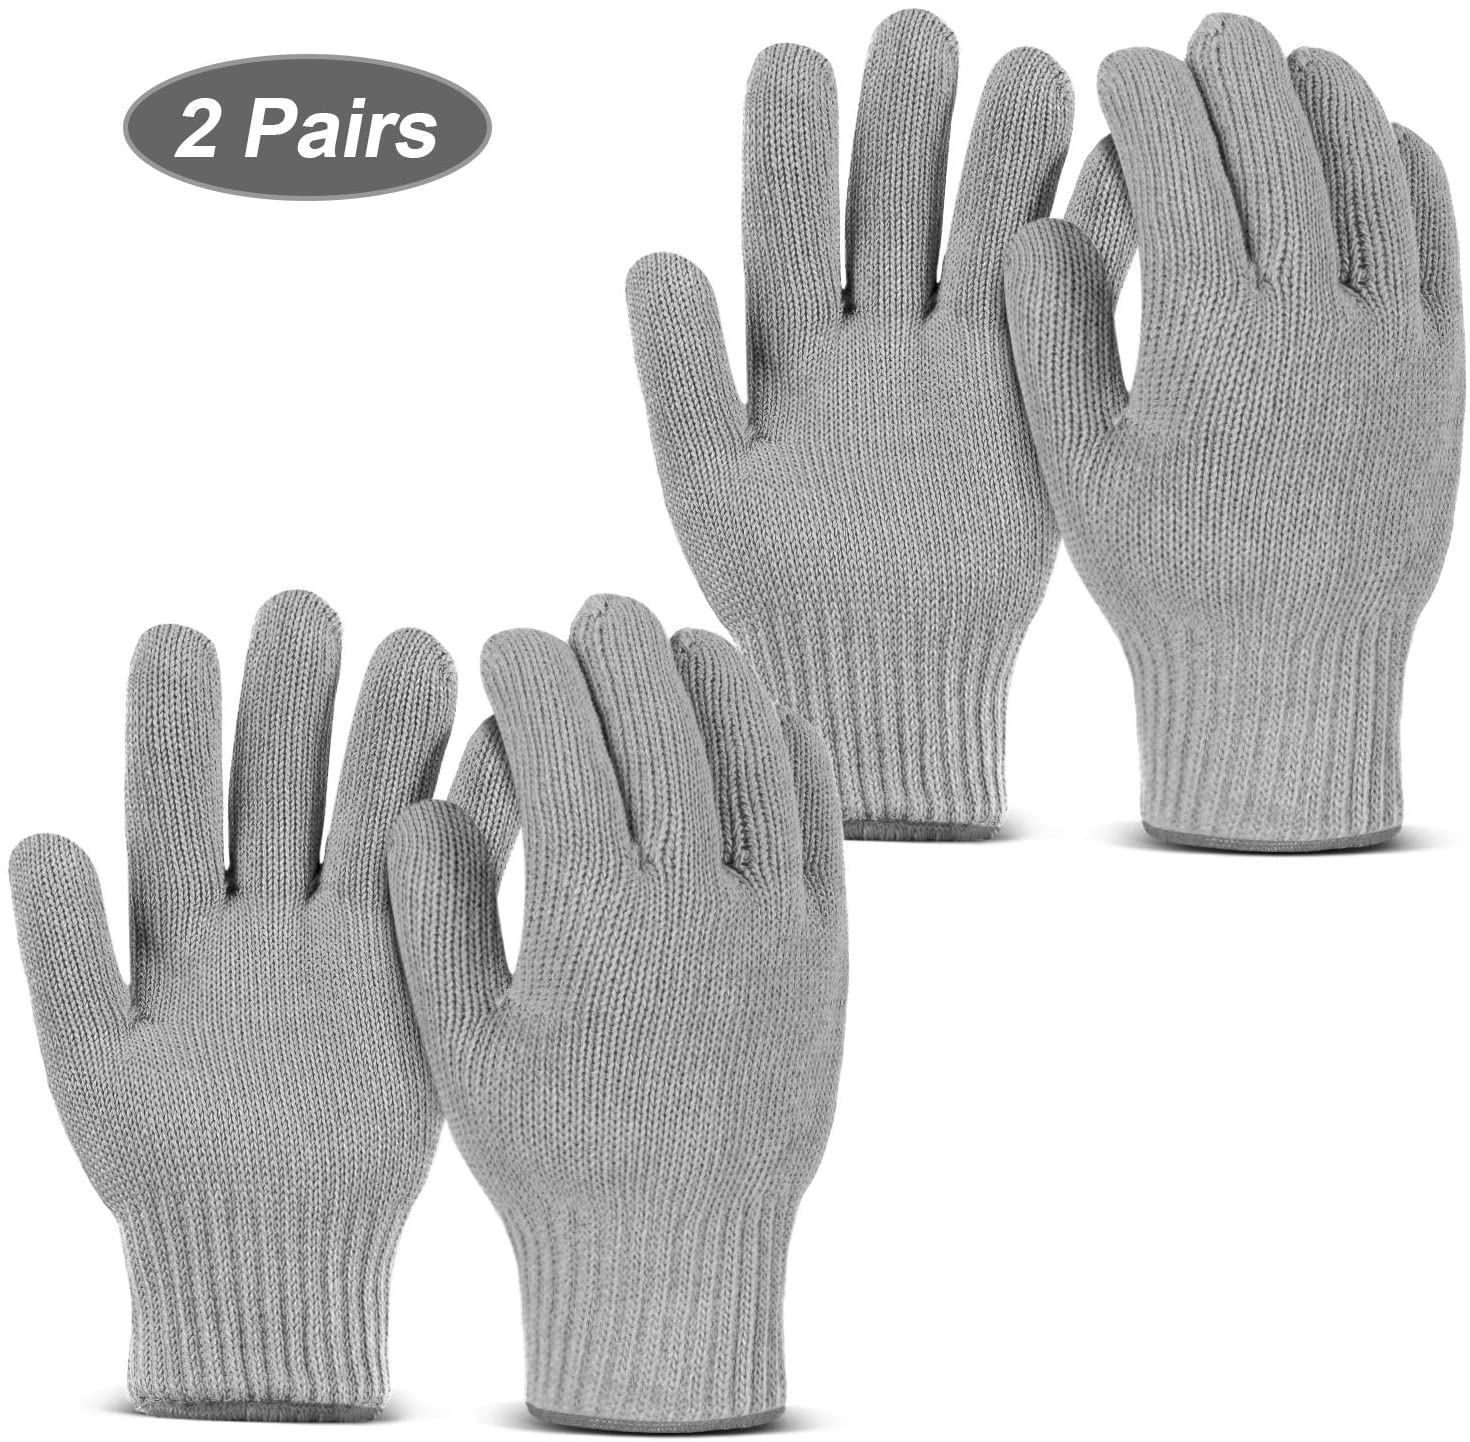 MAFORES Double Oven Mitts, Heat Resistant Kitchen Gloves Heat Resistant Gloves Oven Gloves Heat Resistant with Fingers for Kitchen Baking BBQ Grilling (Grey, 2)